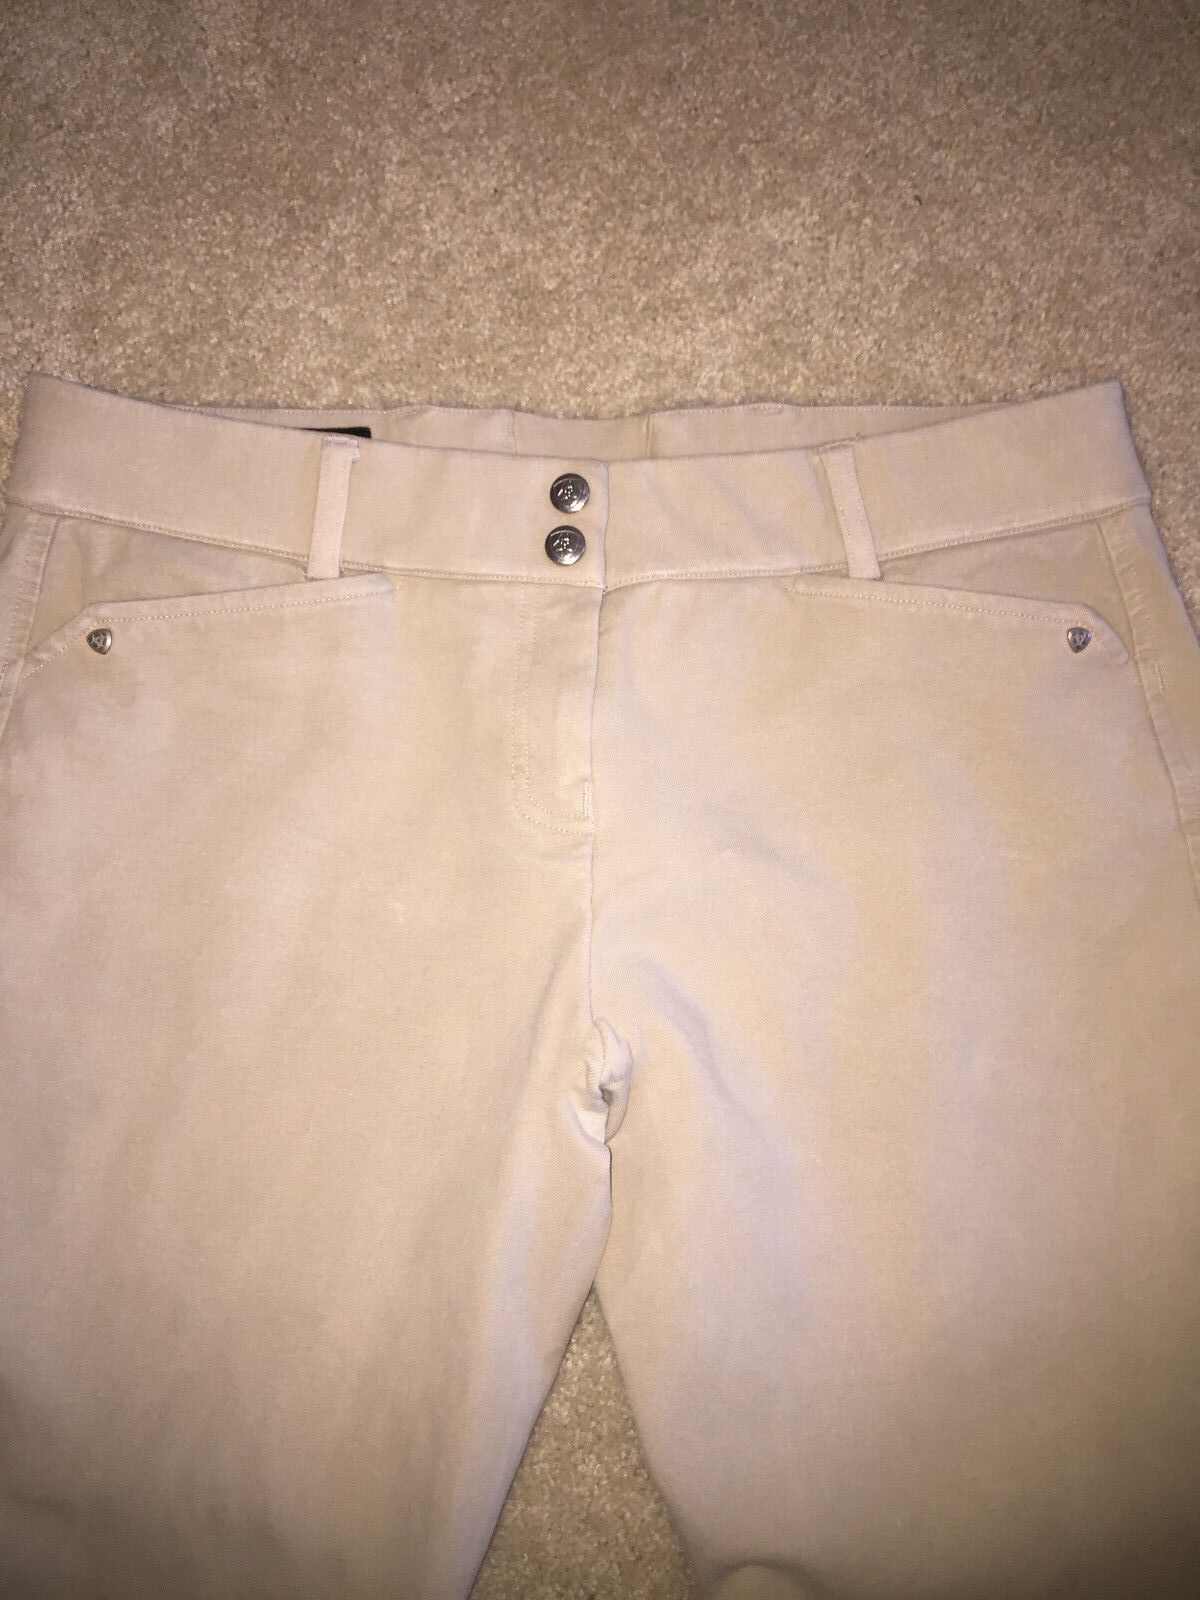 Ariat damen Heritage Low Full Zip Breech Four-Way Stretch Cotton Breathable Wor